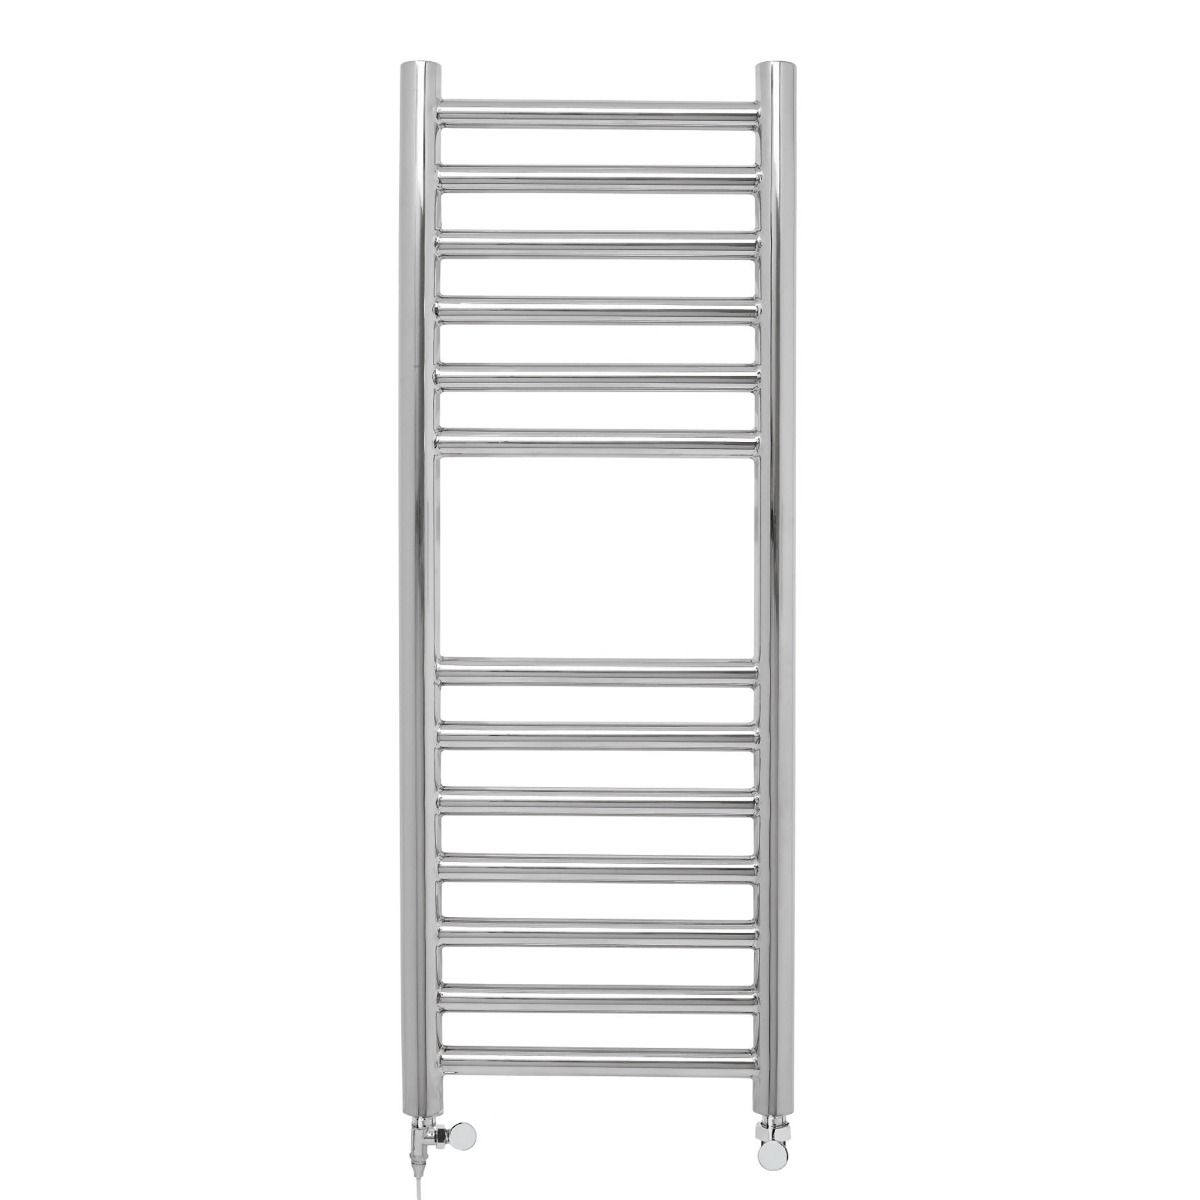 Stainless Steel Heated Towel Rail 80x50